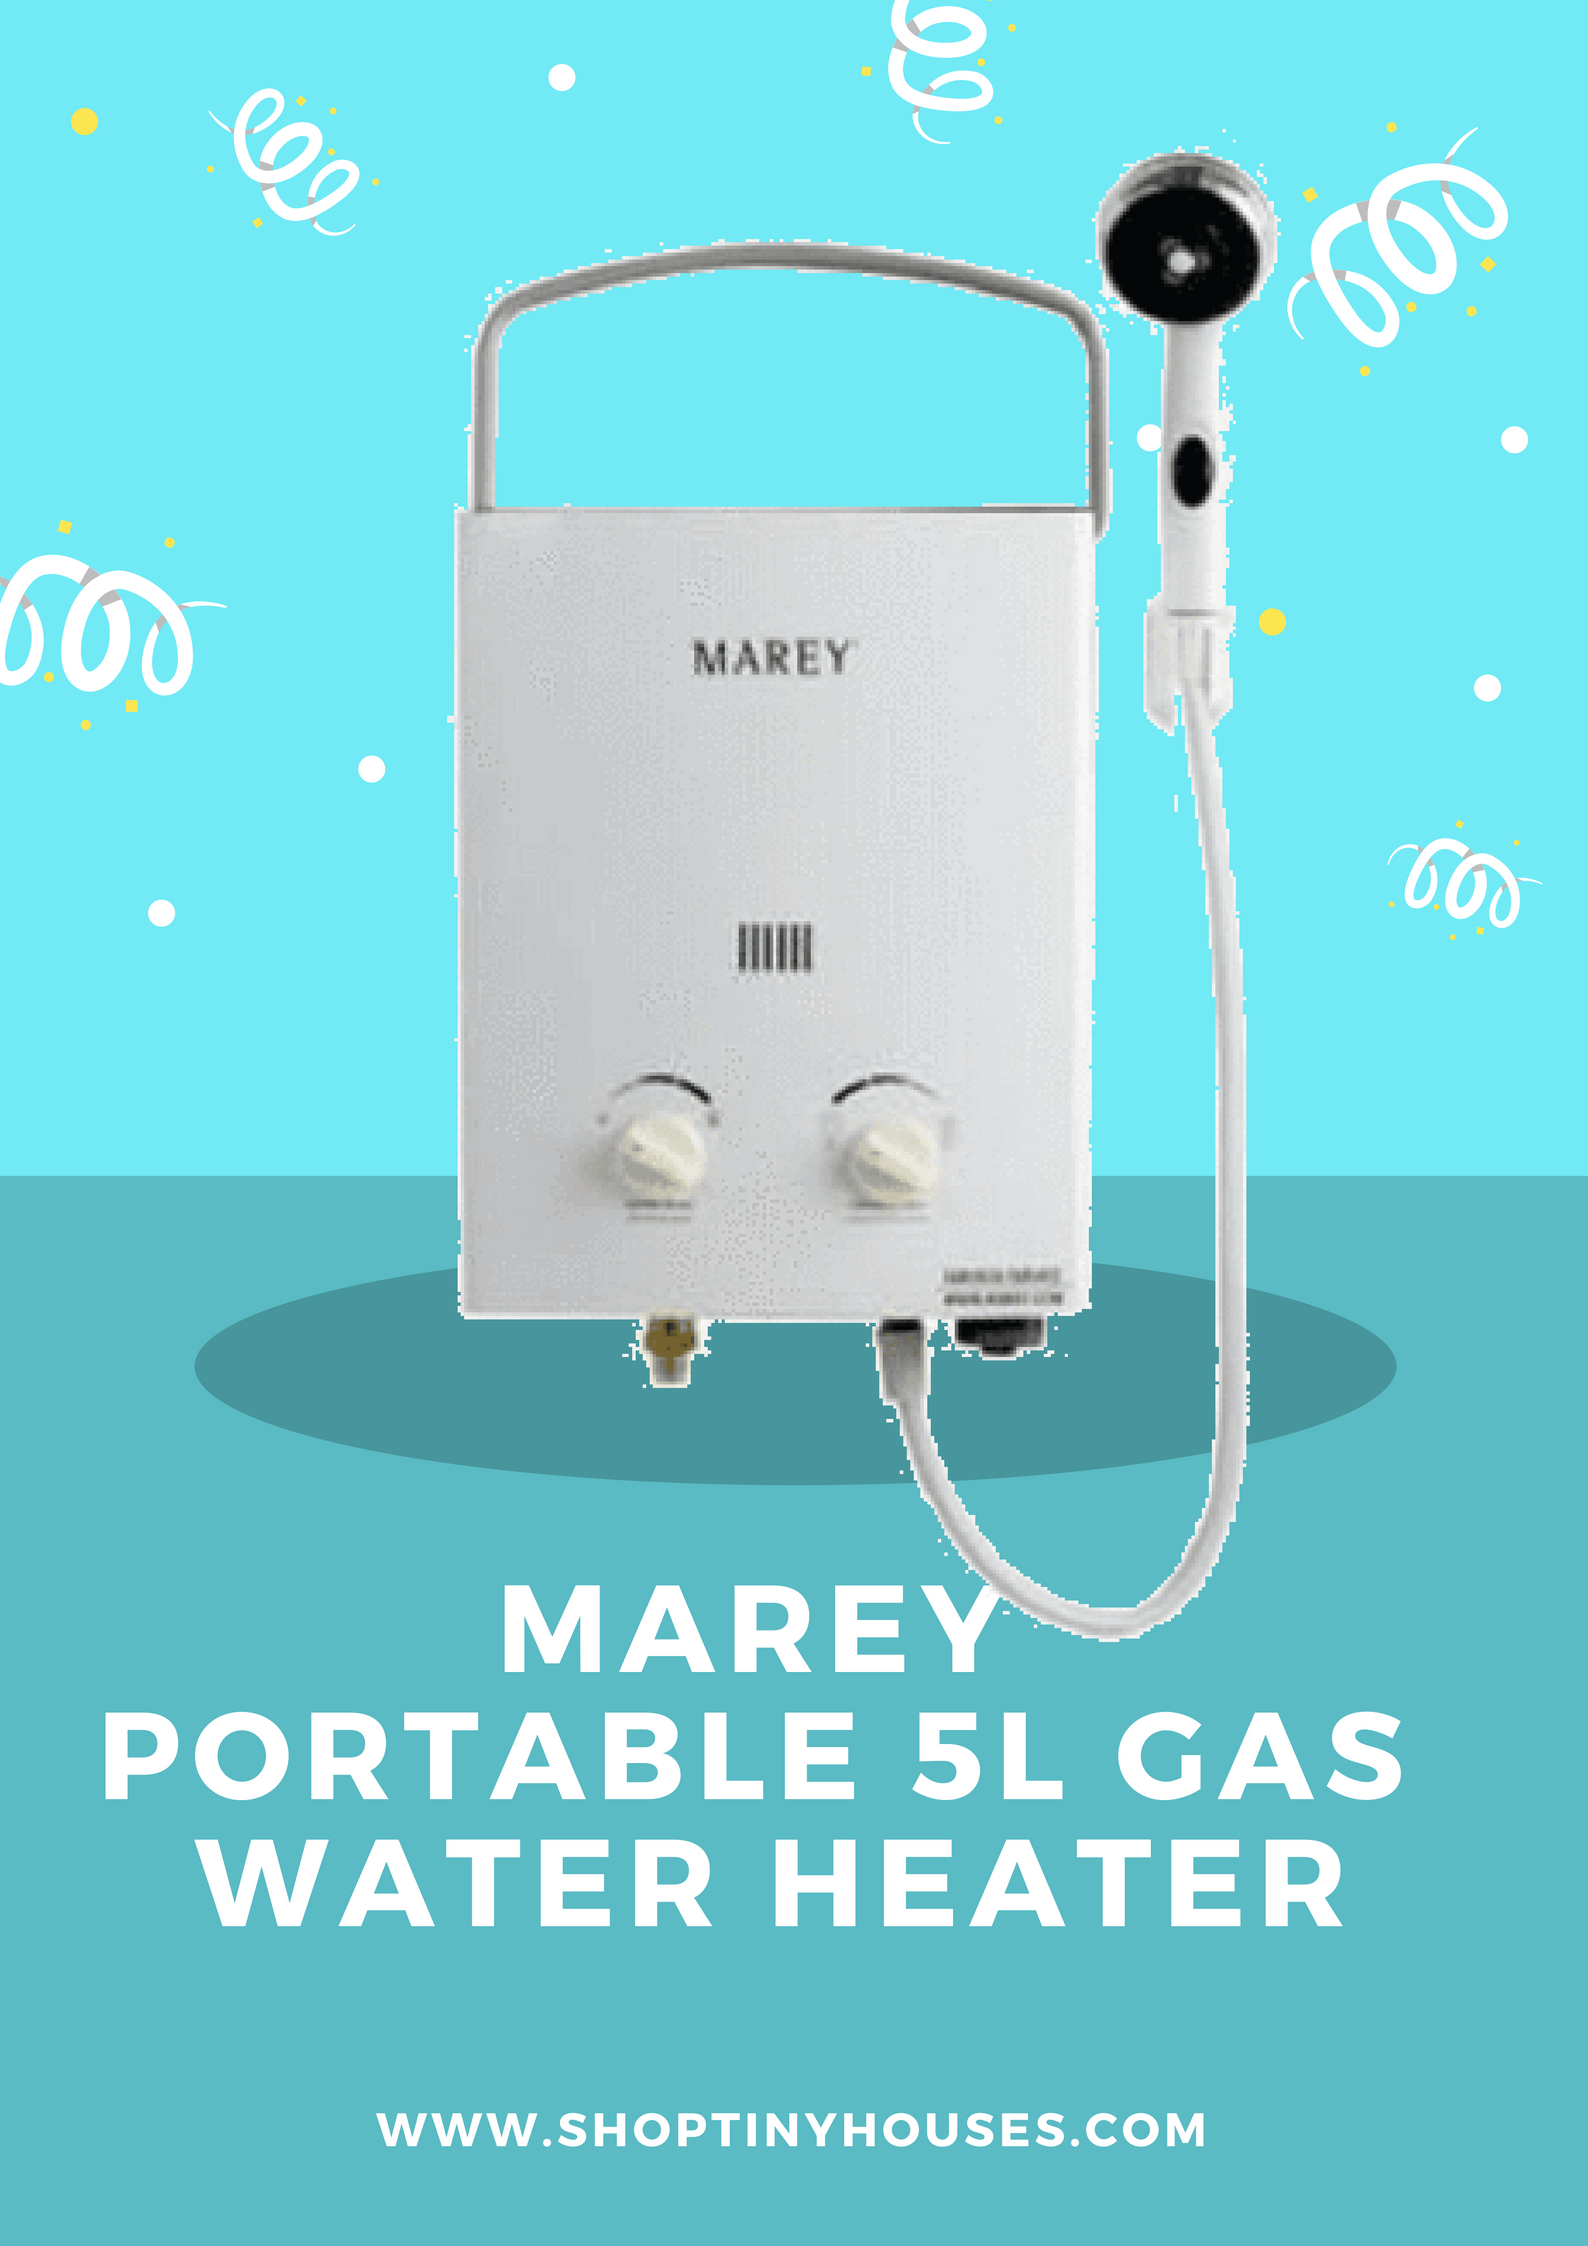 Pin on Featured Products Marey Electric Tankless Water Heater Wiring Diagram on electric hot water wiring diagrams, electric tankless water heater specifications, hot water heater wiring diagrams, rv water heater wiring diagrams, rheem wiring diagrams, electric tankless water heater installation,